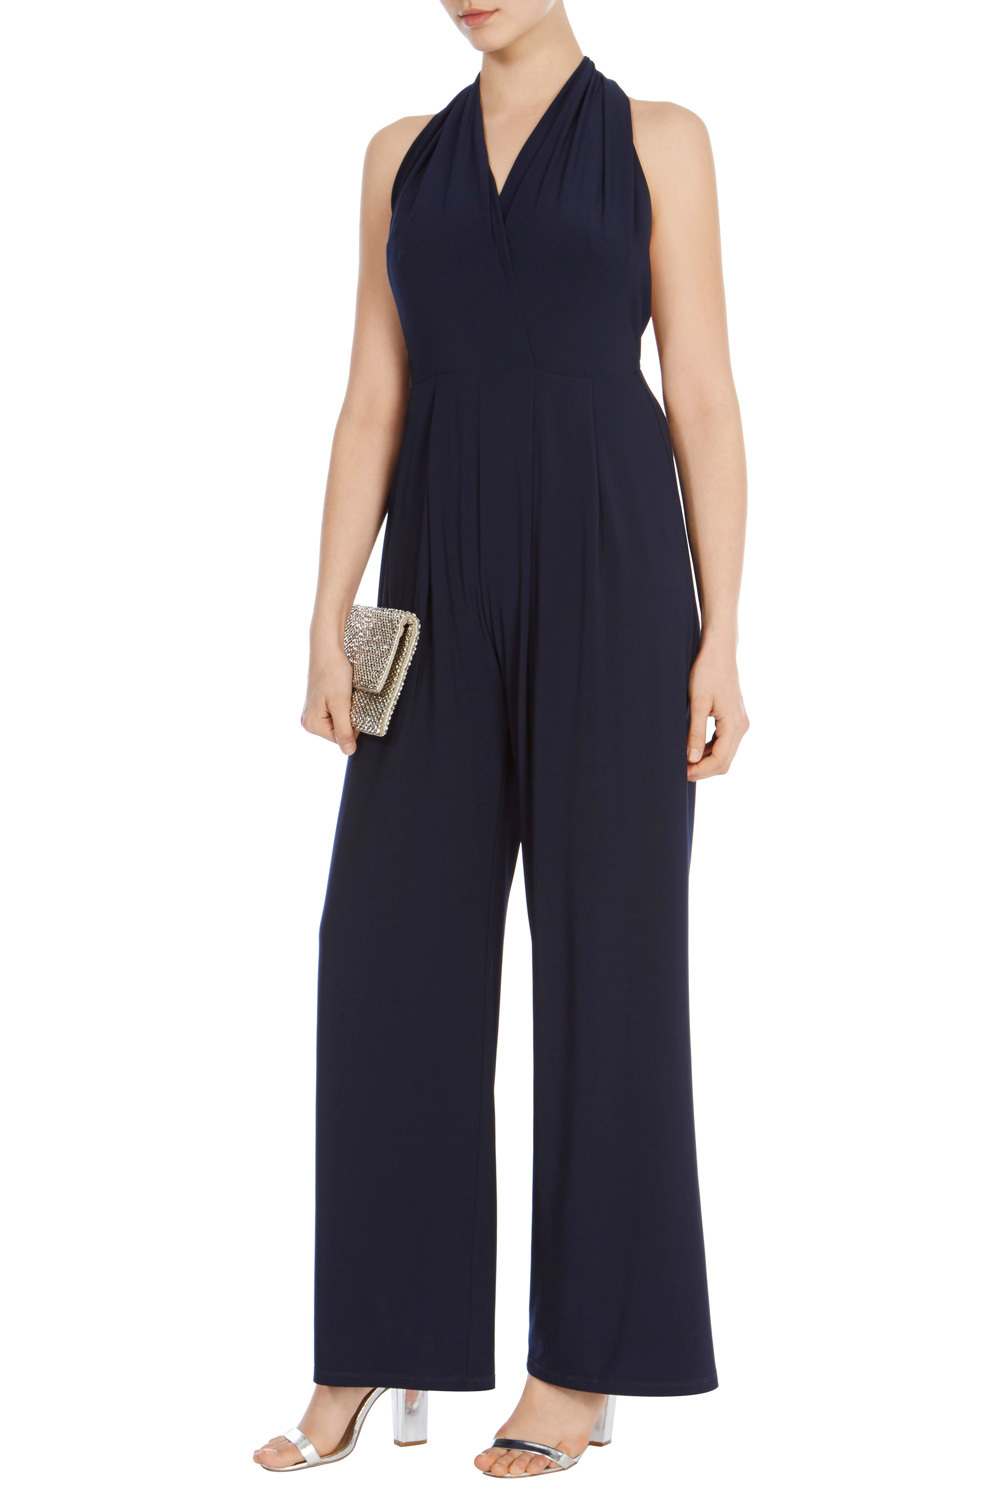 Corwin Jersey Jumpsuit - length: standard; pattern: plain; sleeve style: sleeveless; neckline: low halter neck; predominant colour: black; occasions: evening; fit: body skimming; fibres: polyester/polyamide - stretch; sleeve length: sleeveless; style: jumpsuit; pattern type: fabric; texture group: jersey - stretchy/drapey; season: s/s 2016; wardrobe: event